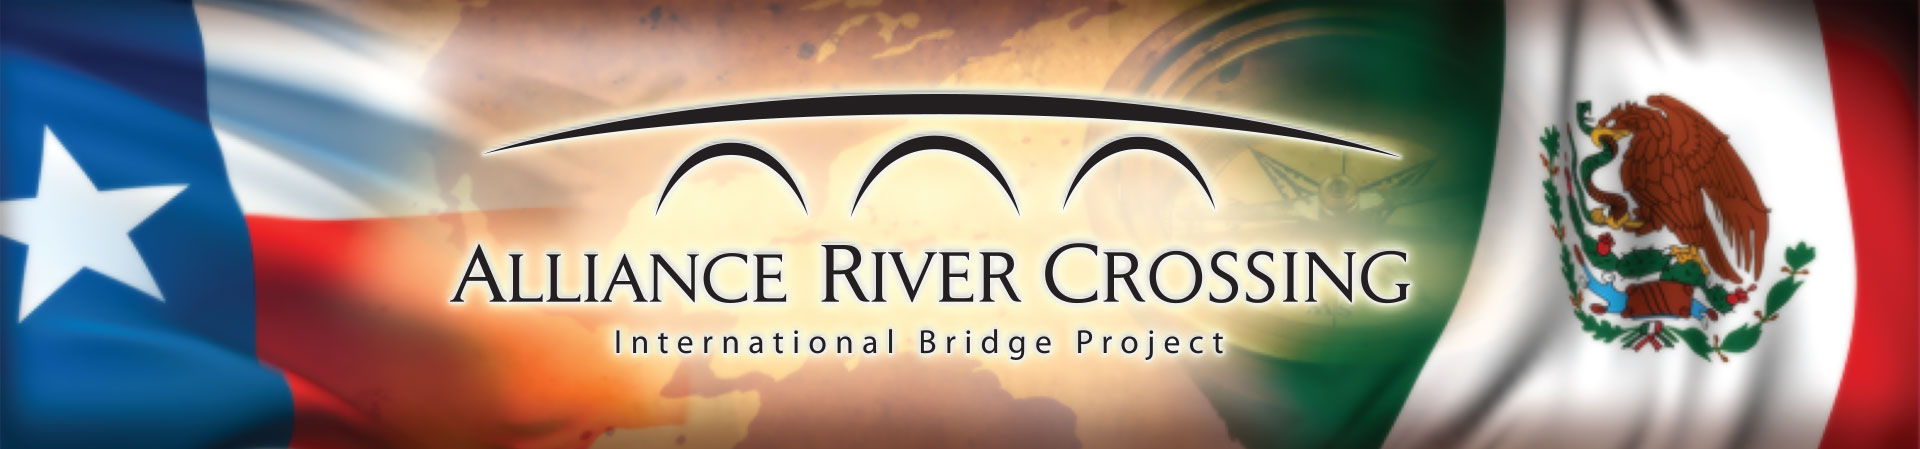 Aalliance River Crossing International Bridge Project